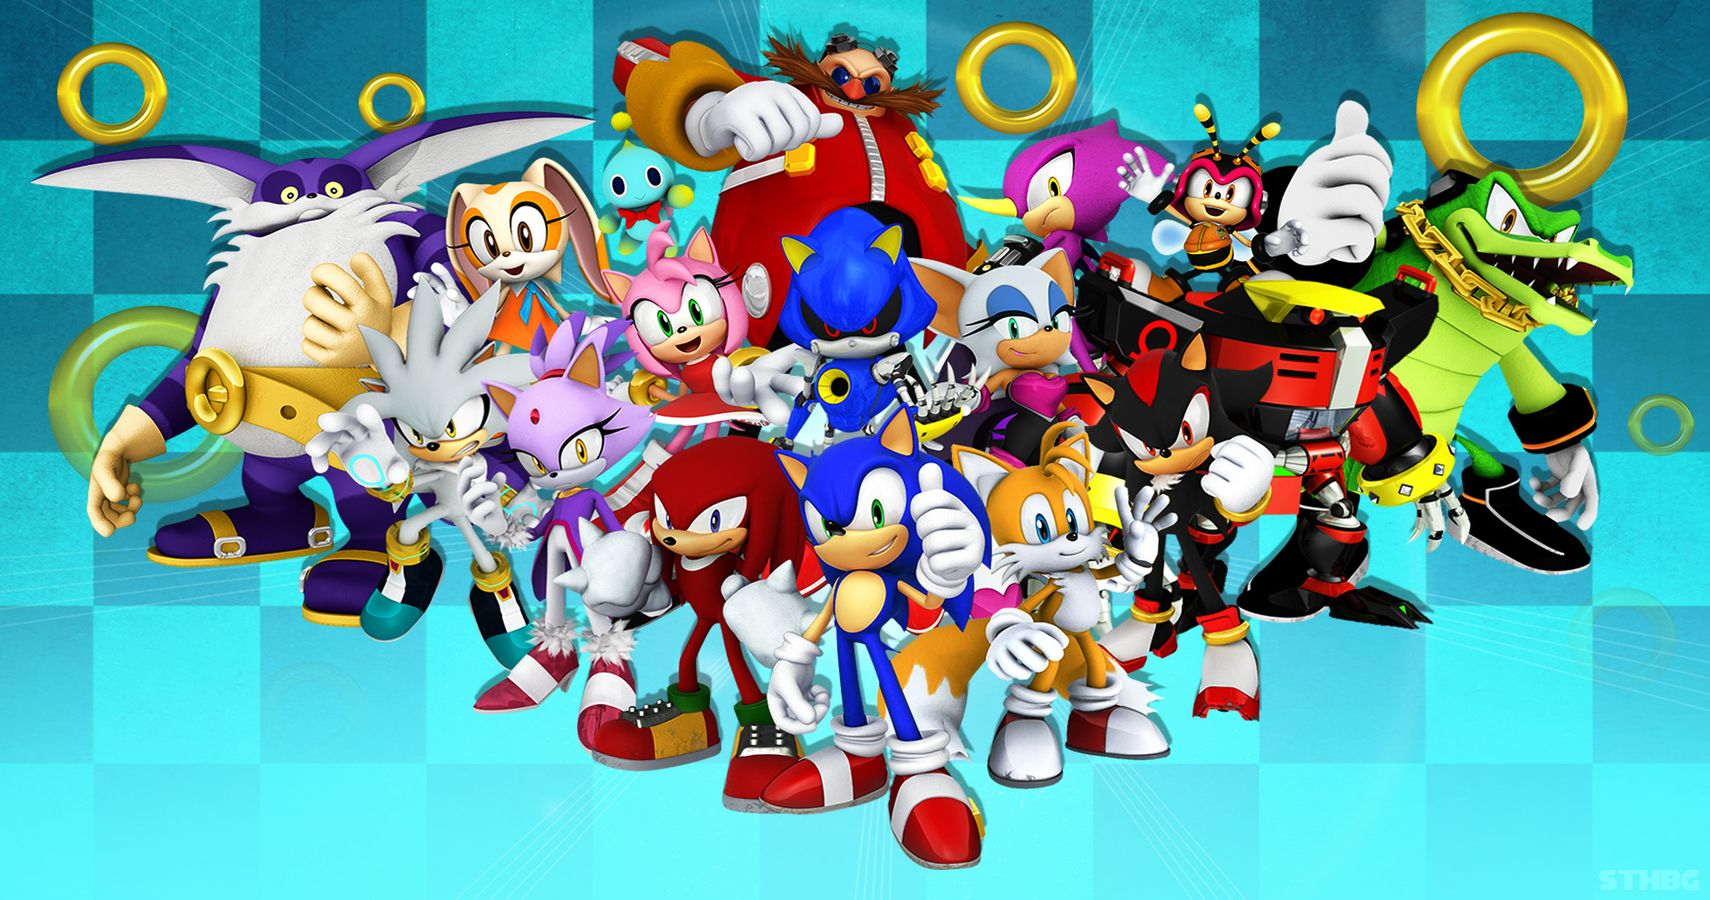 5 Sonic Characters We Want To See In The Sequel And Who Should